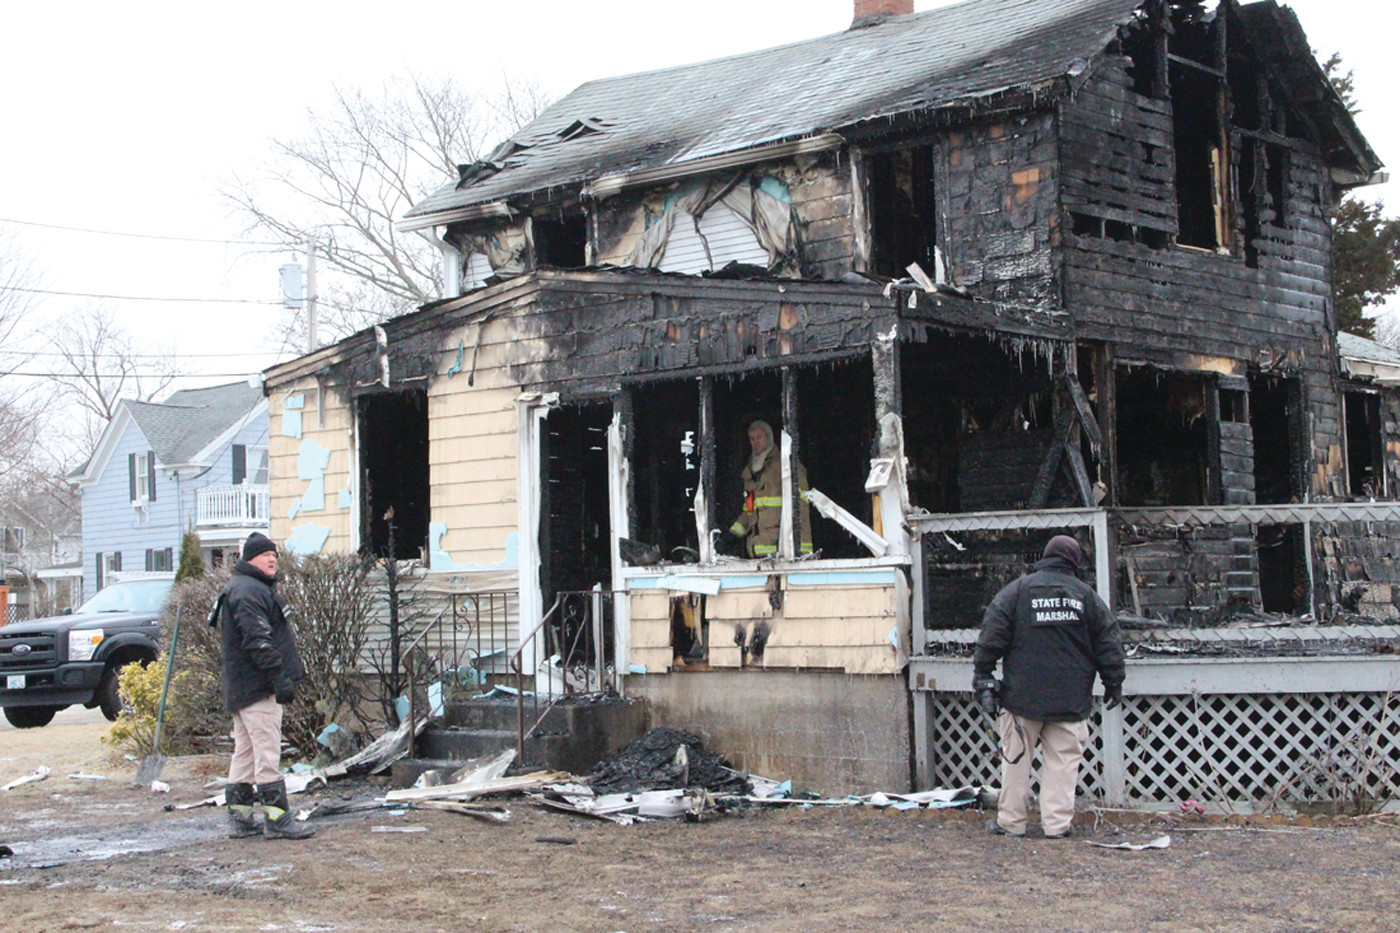 A TOTAL LOSS: The charred remnants of the house on Strand Avenue were all that remained after a fire engulfed the property early Monday morning. Here, state and city fire marshals investigate the scene.